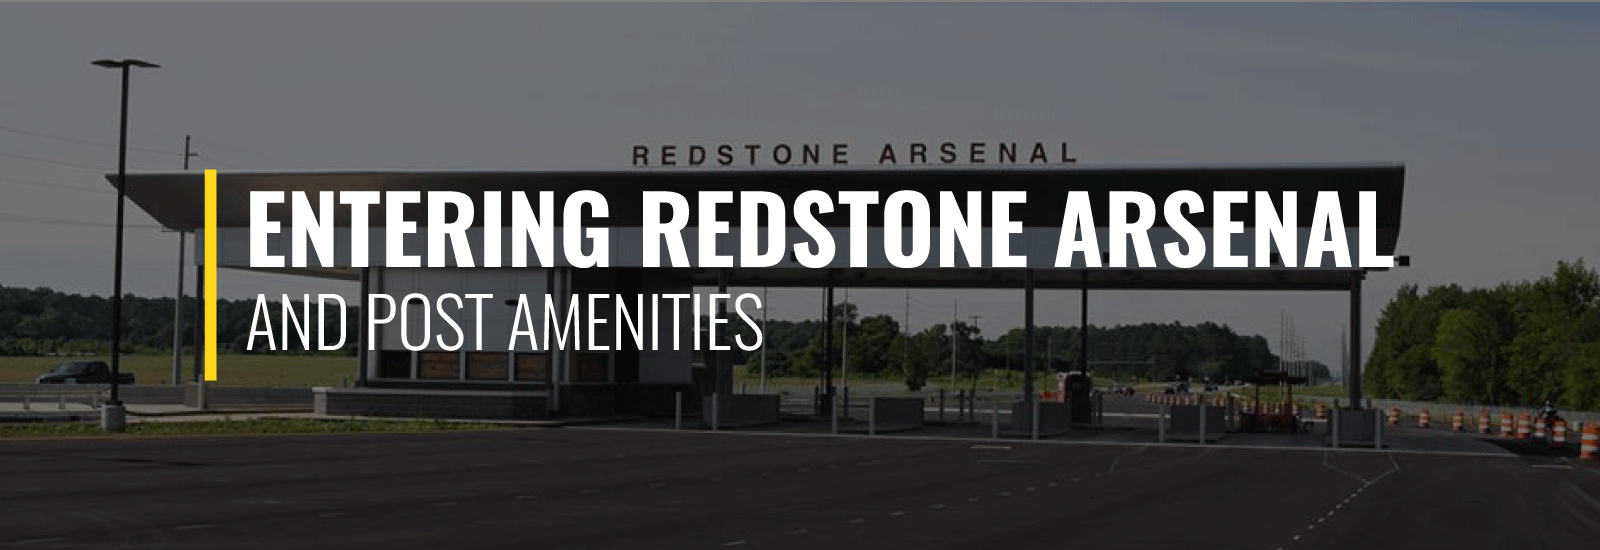 Entering Redstone Arsenal and Post Amenities